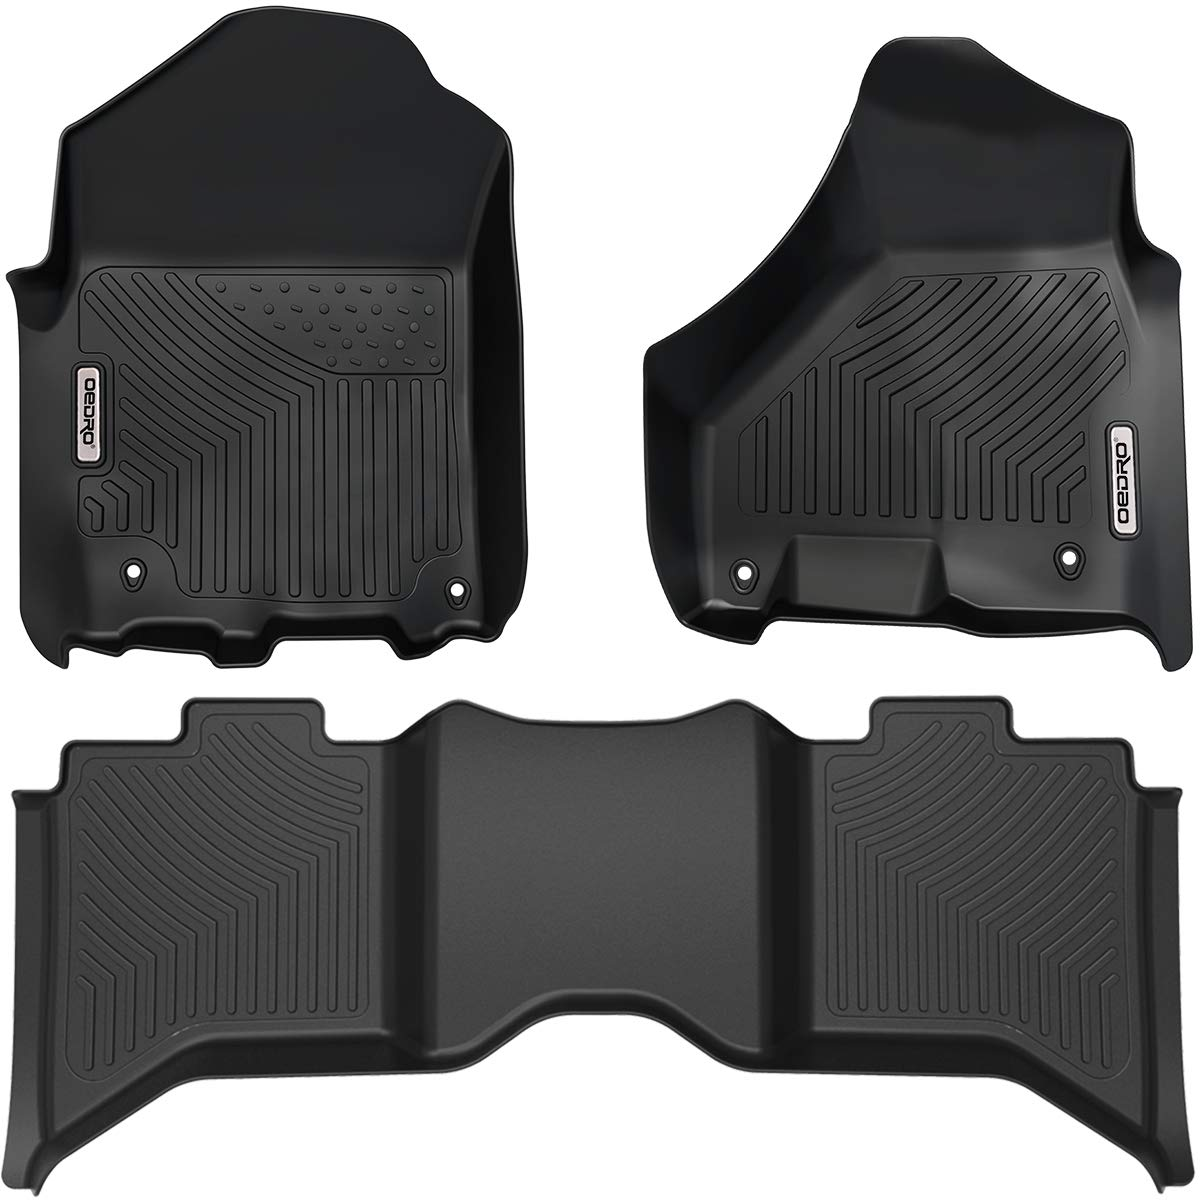 OEDRO Floor Mats Compatible for 2019-2021 Dodge Ram 1500 Classic Crew Cab, 2012-2018 Dodge Ram 1500/2500/3500 Crew Cab, Unique Black TPE All-Weather Guard Includes 1st and 2nd Row: Full Set Liners